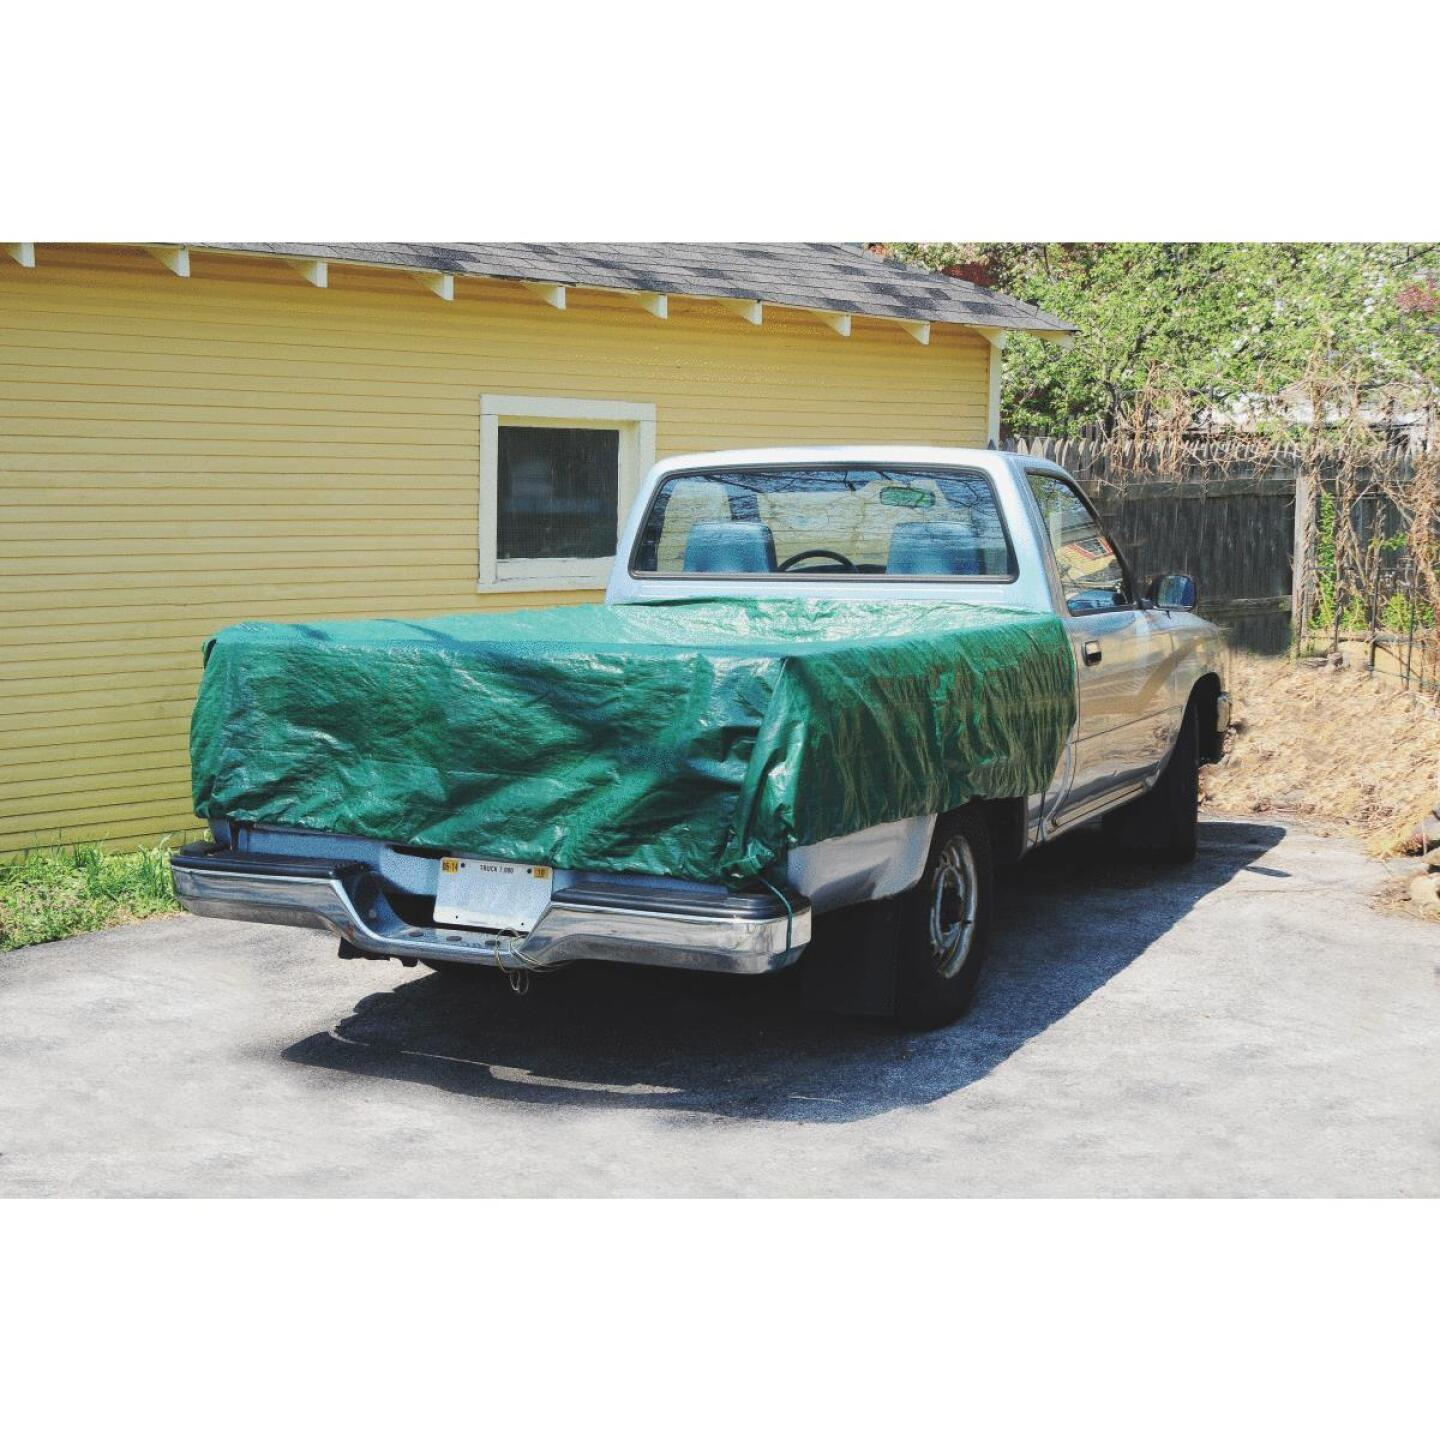 Do it 9 Ft. x 9 Ft. Poly Fabric Green Lawn Cleanup Tarp Image 4